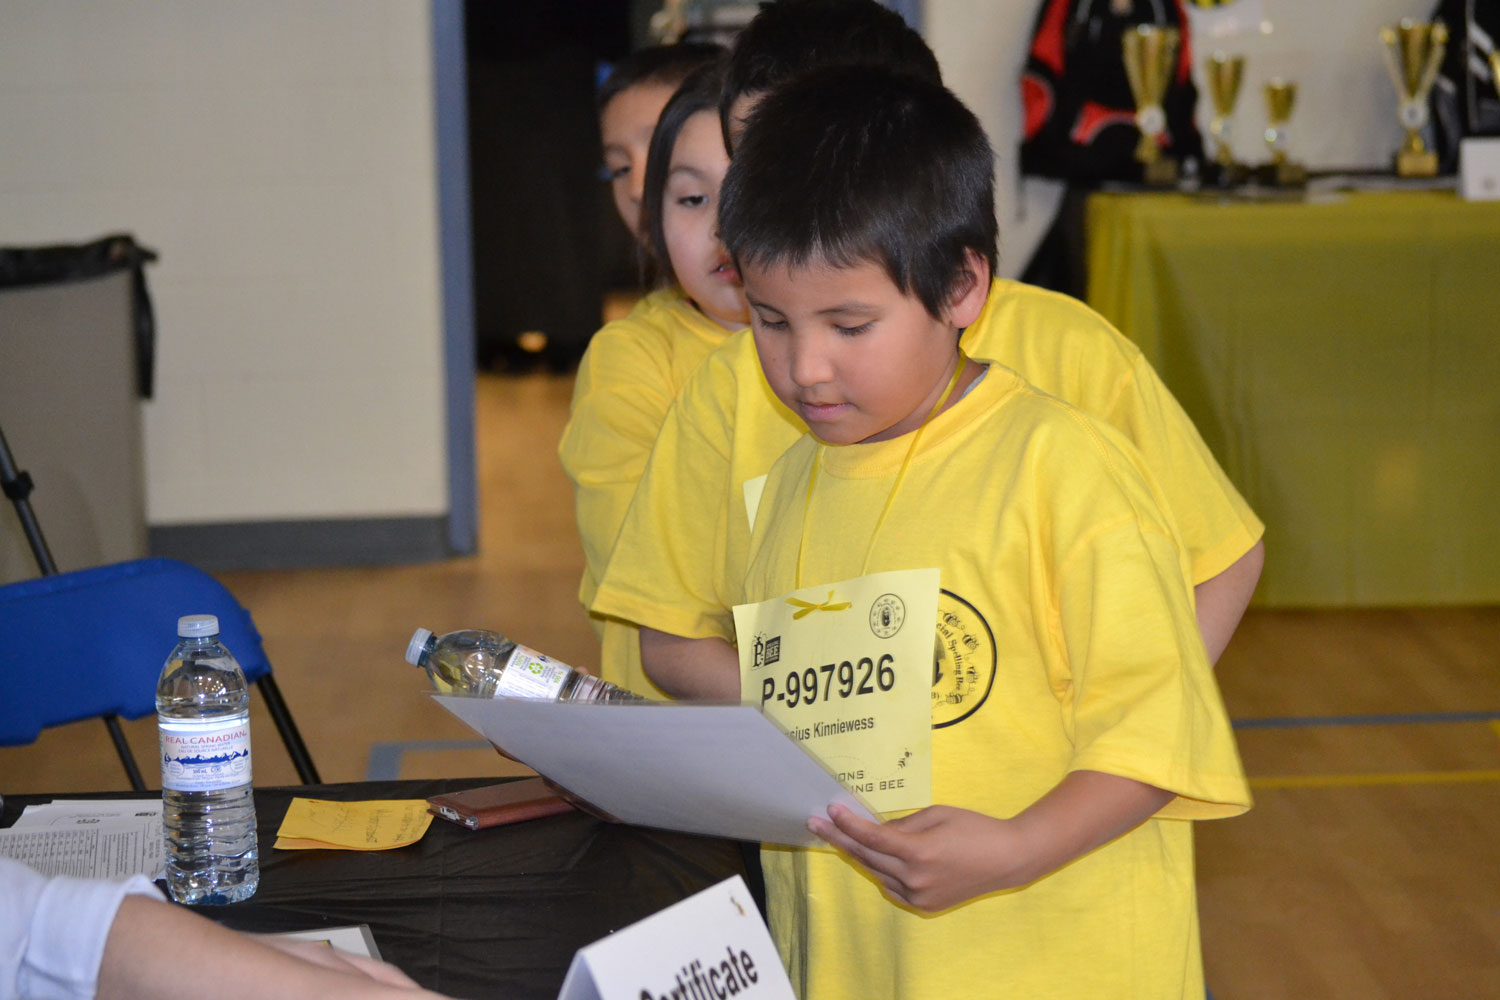 2nd annual First Nations Provincial Spelling Bee